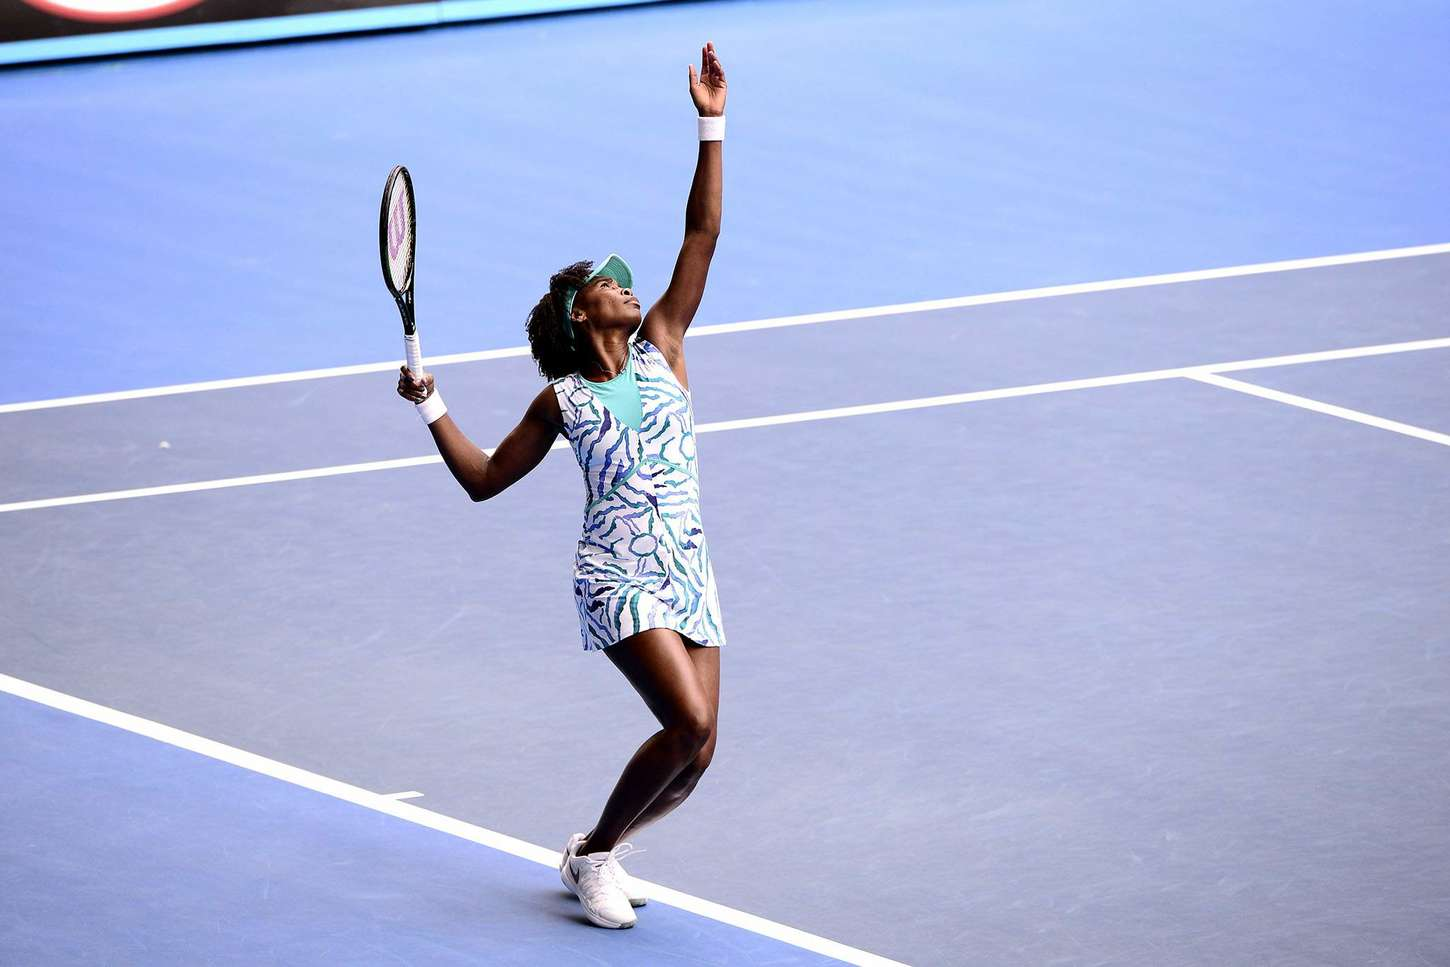 Venus Williams: 2015